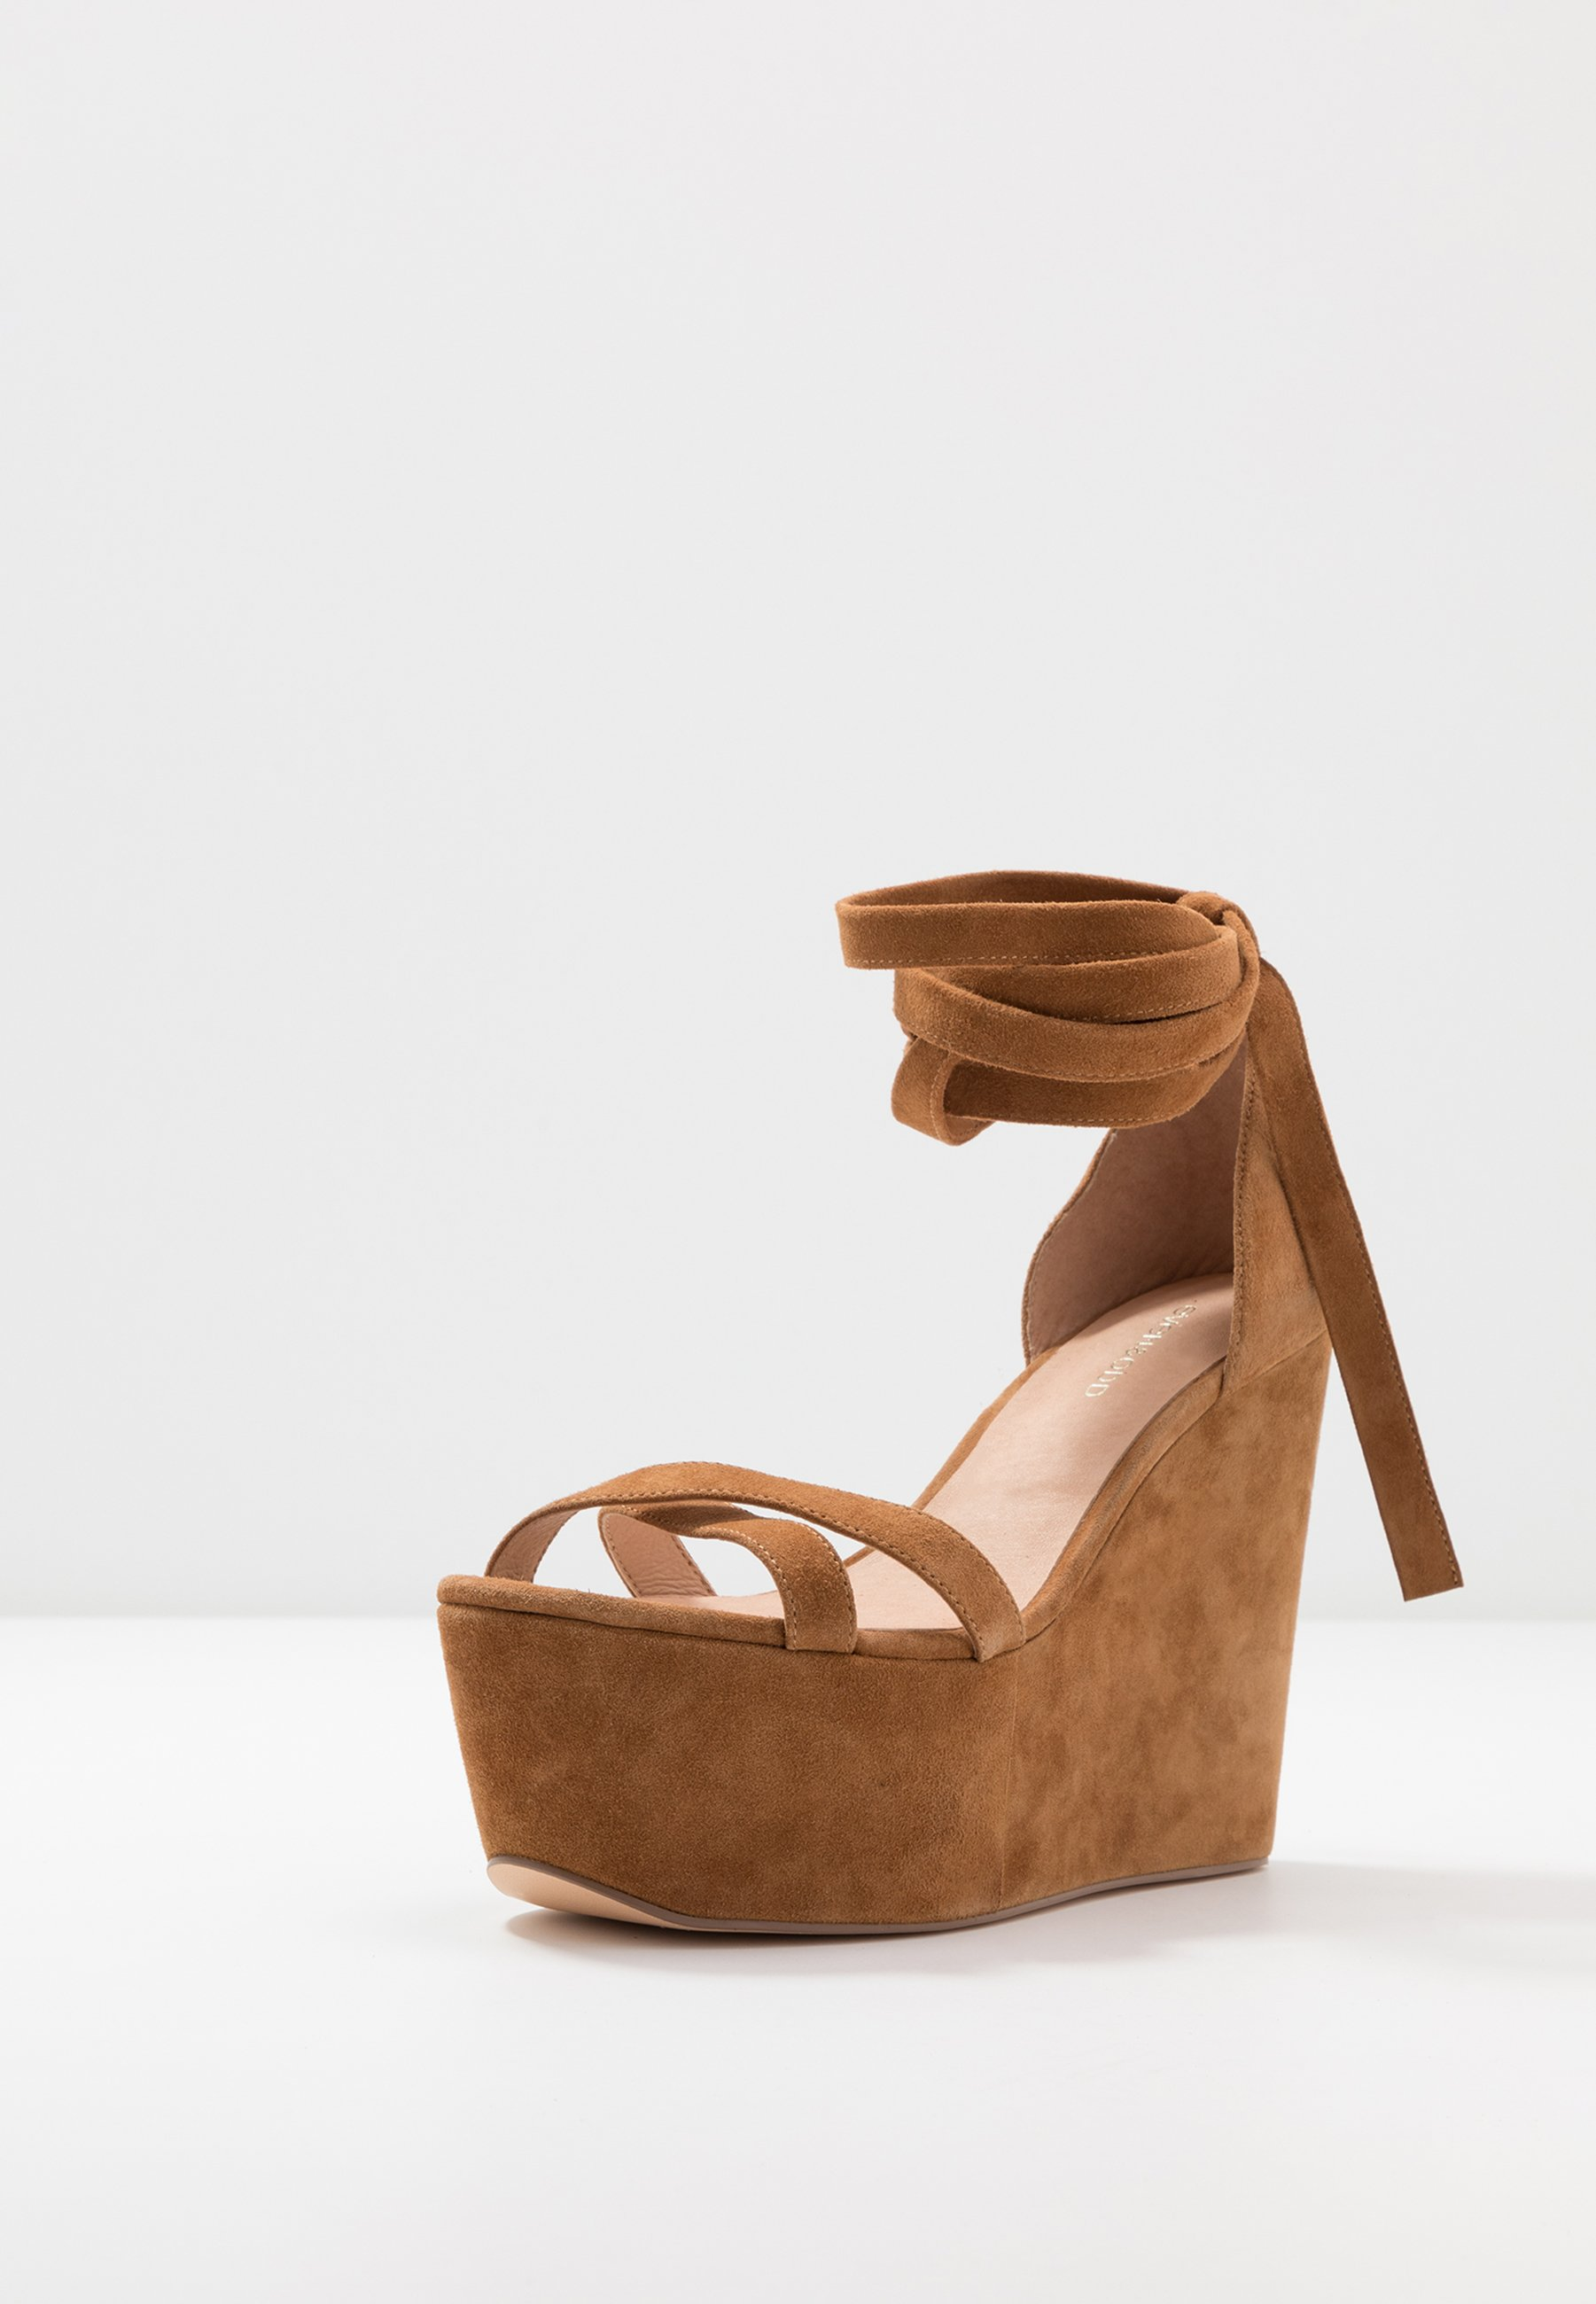 Even&Odd LEATHER High Heel Sandalette cognac/cognac